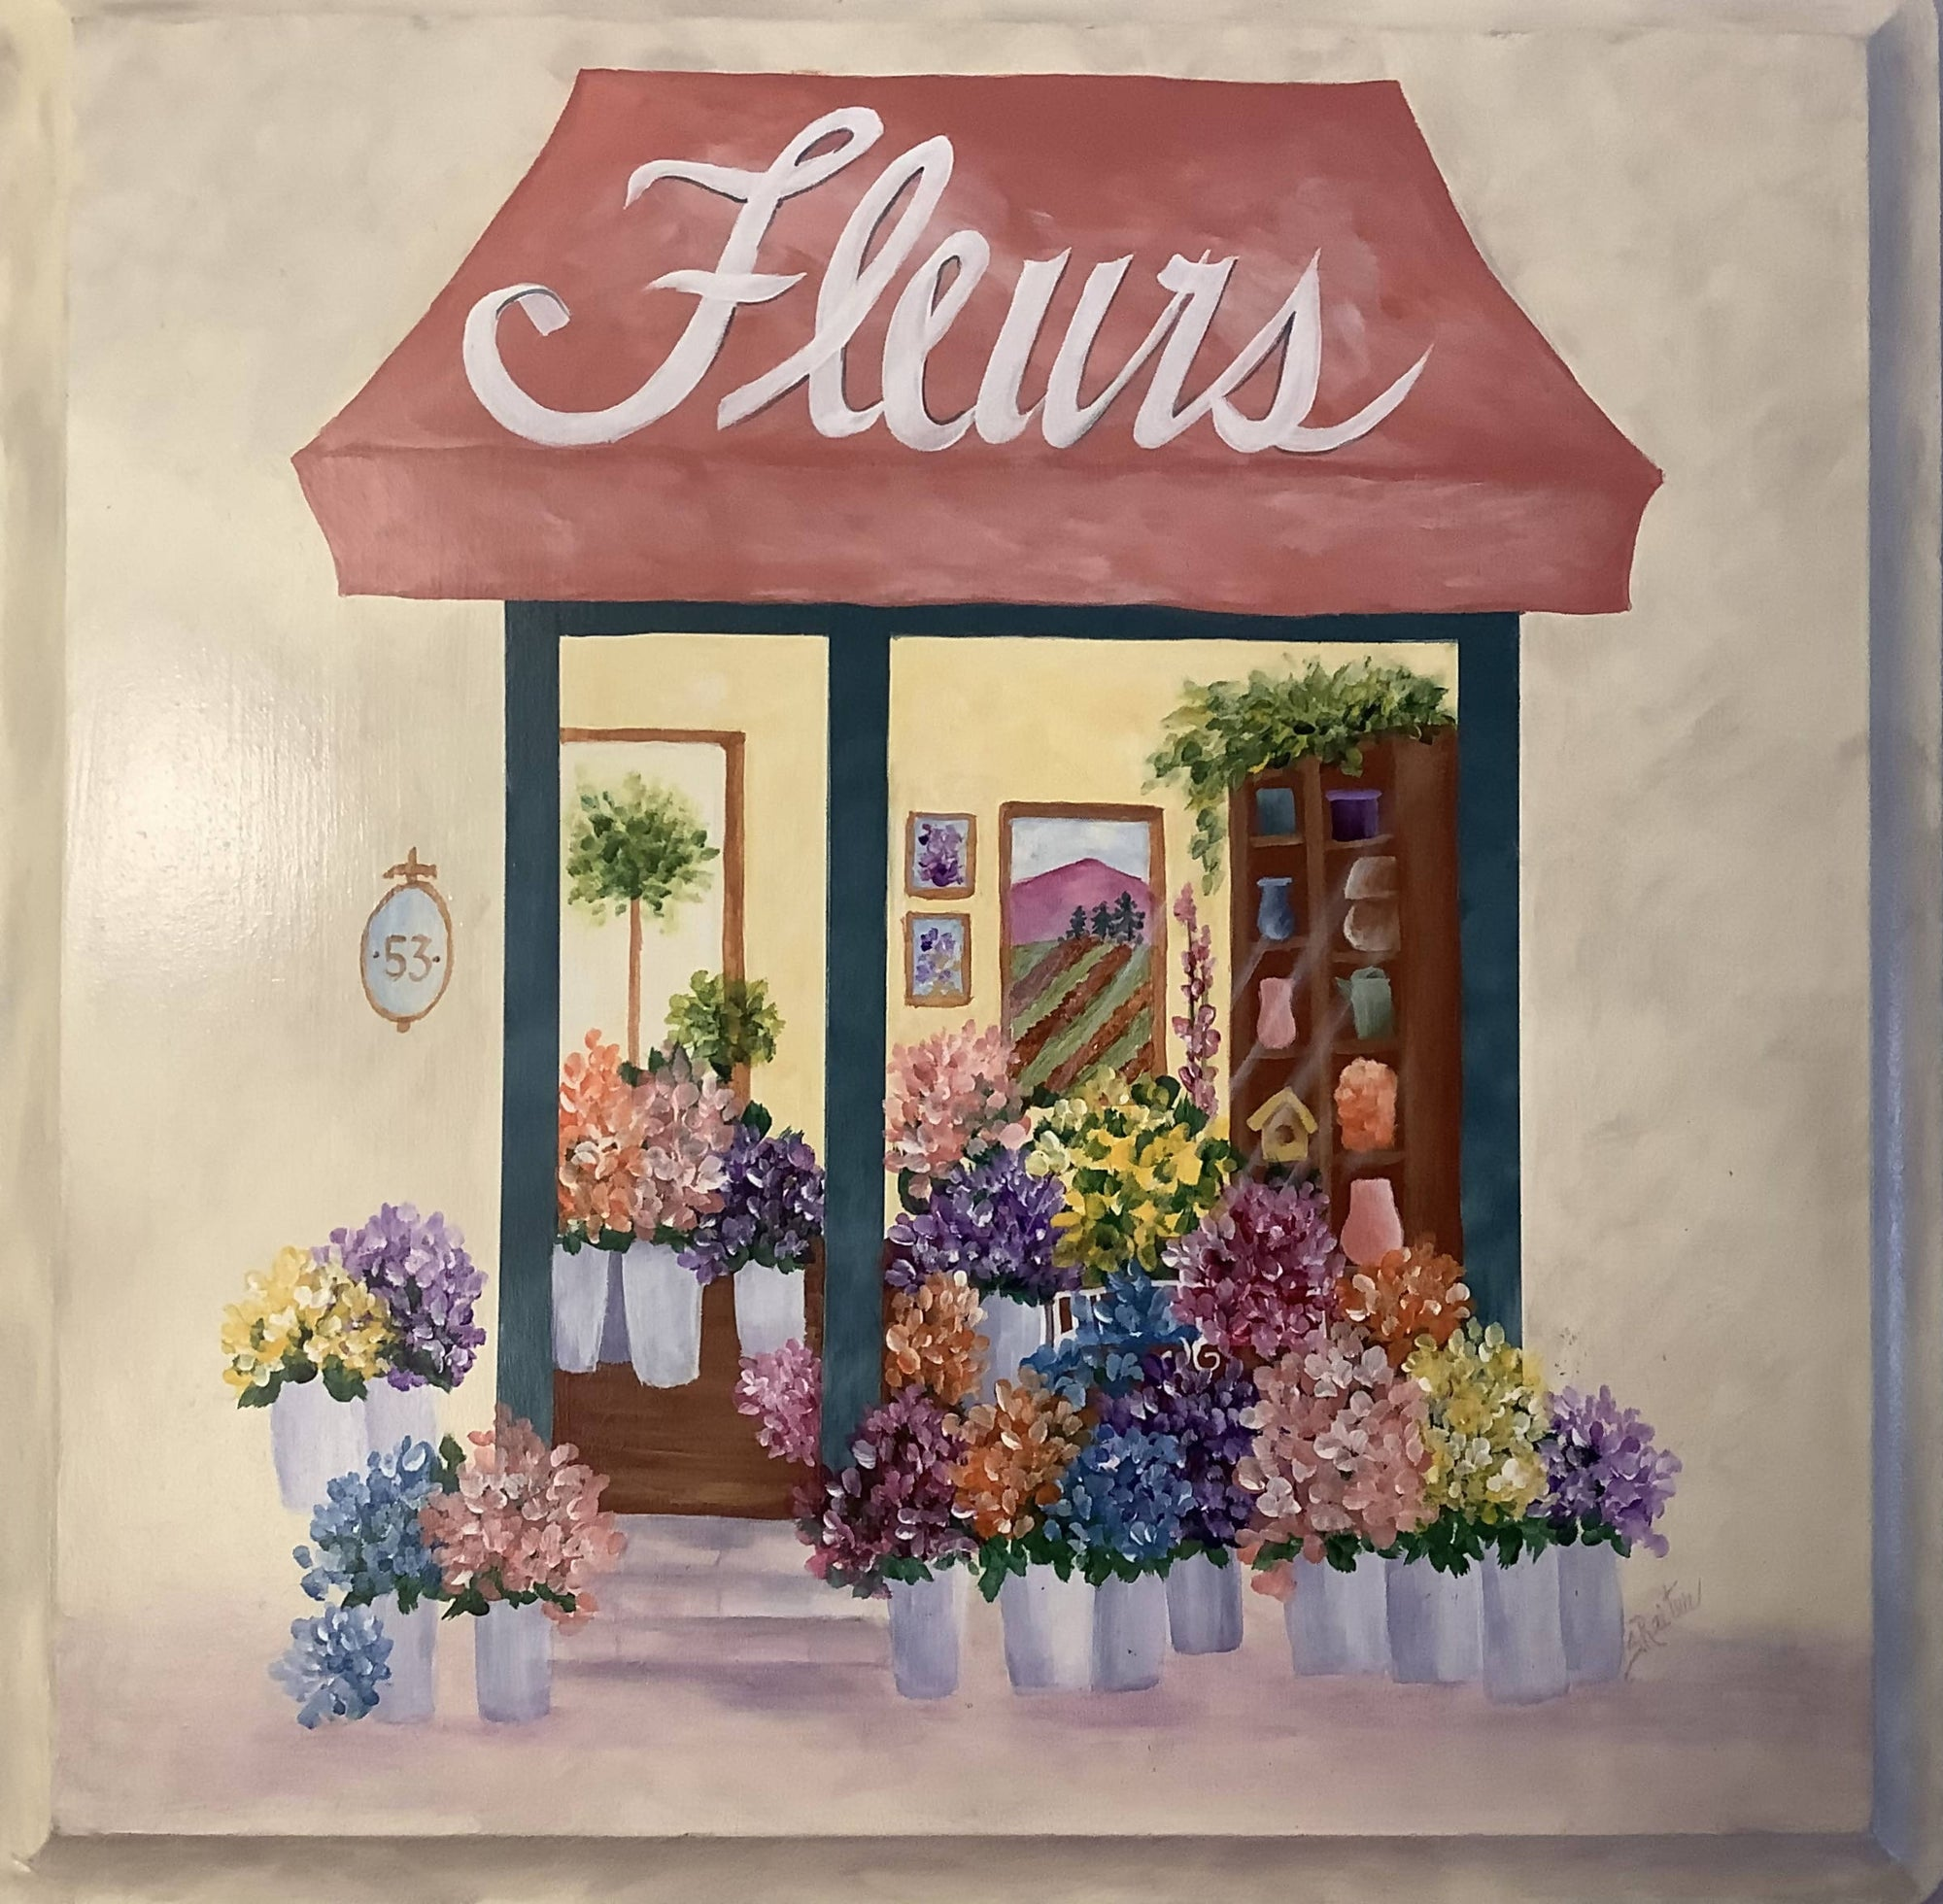 A Beautiful Painting of a Florist Shop on rue St.- Louis en I'll, Paris.